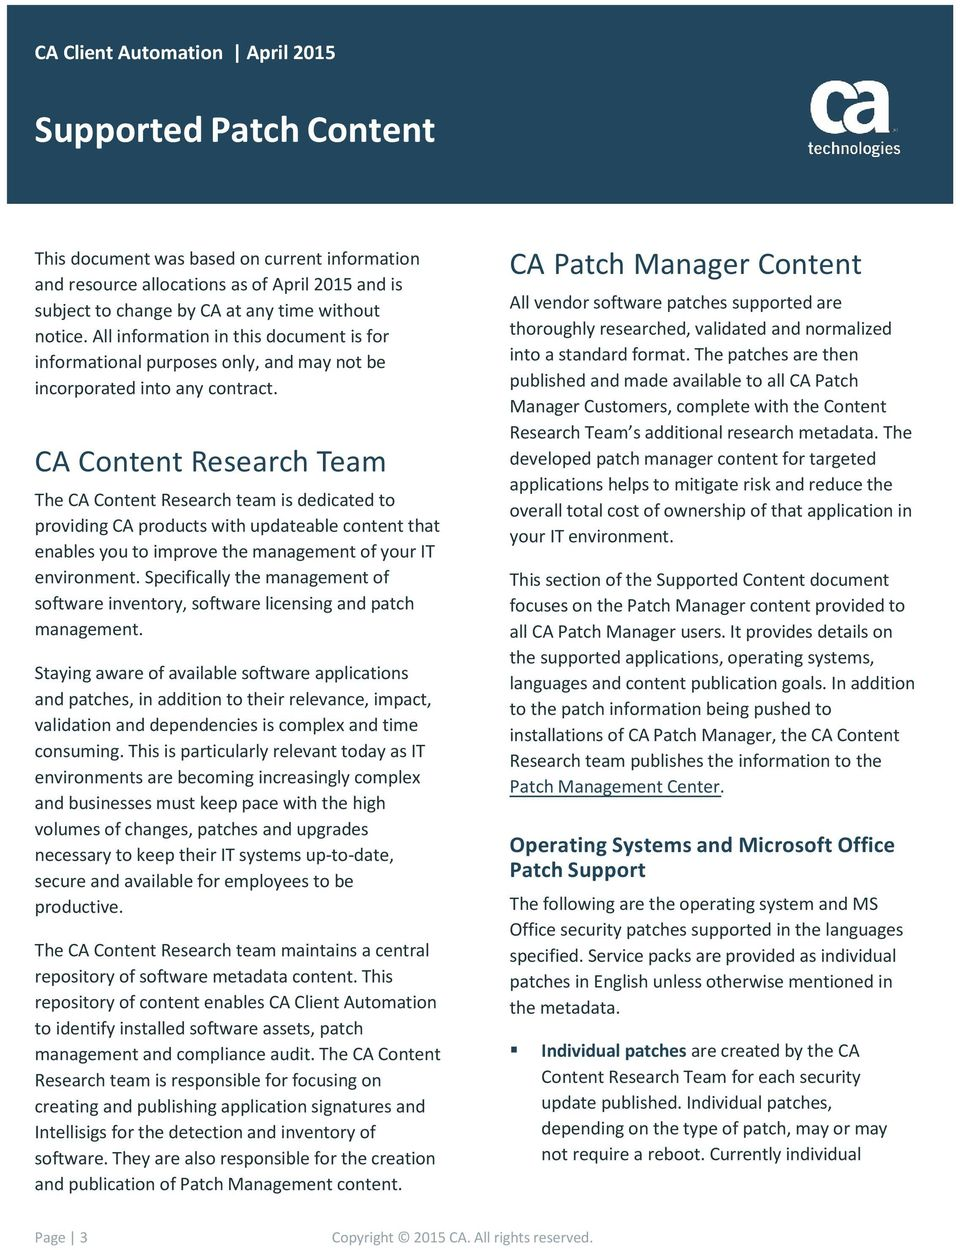 CA Content Research Team The CA Content Research team is dedicated to providing CA products with updateable content that enables you to improve the management of your IT environment.